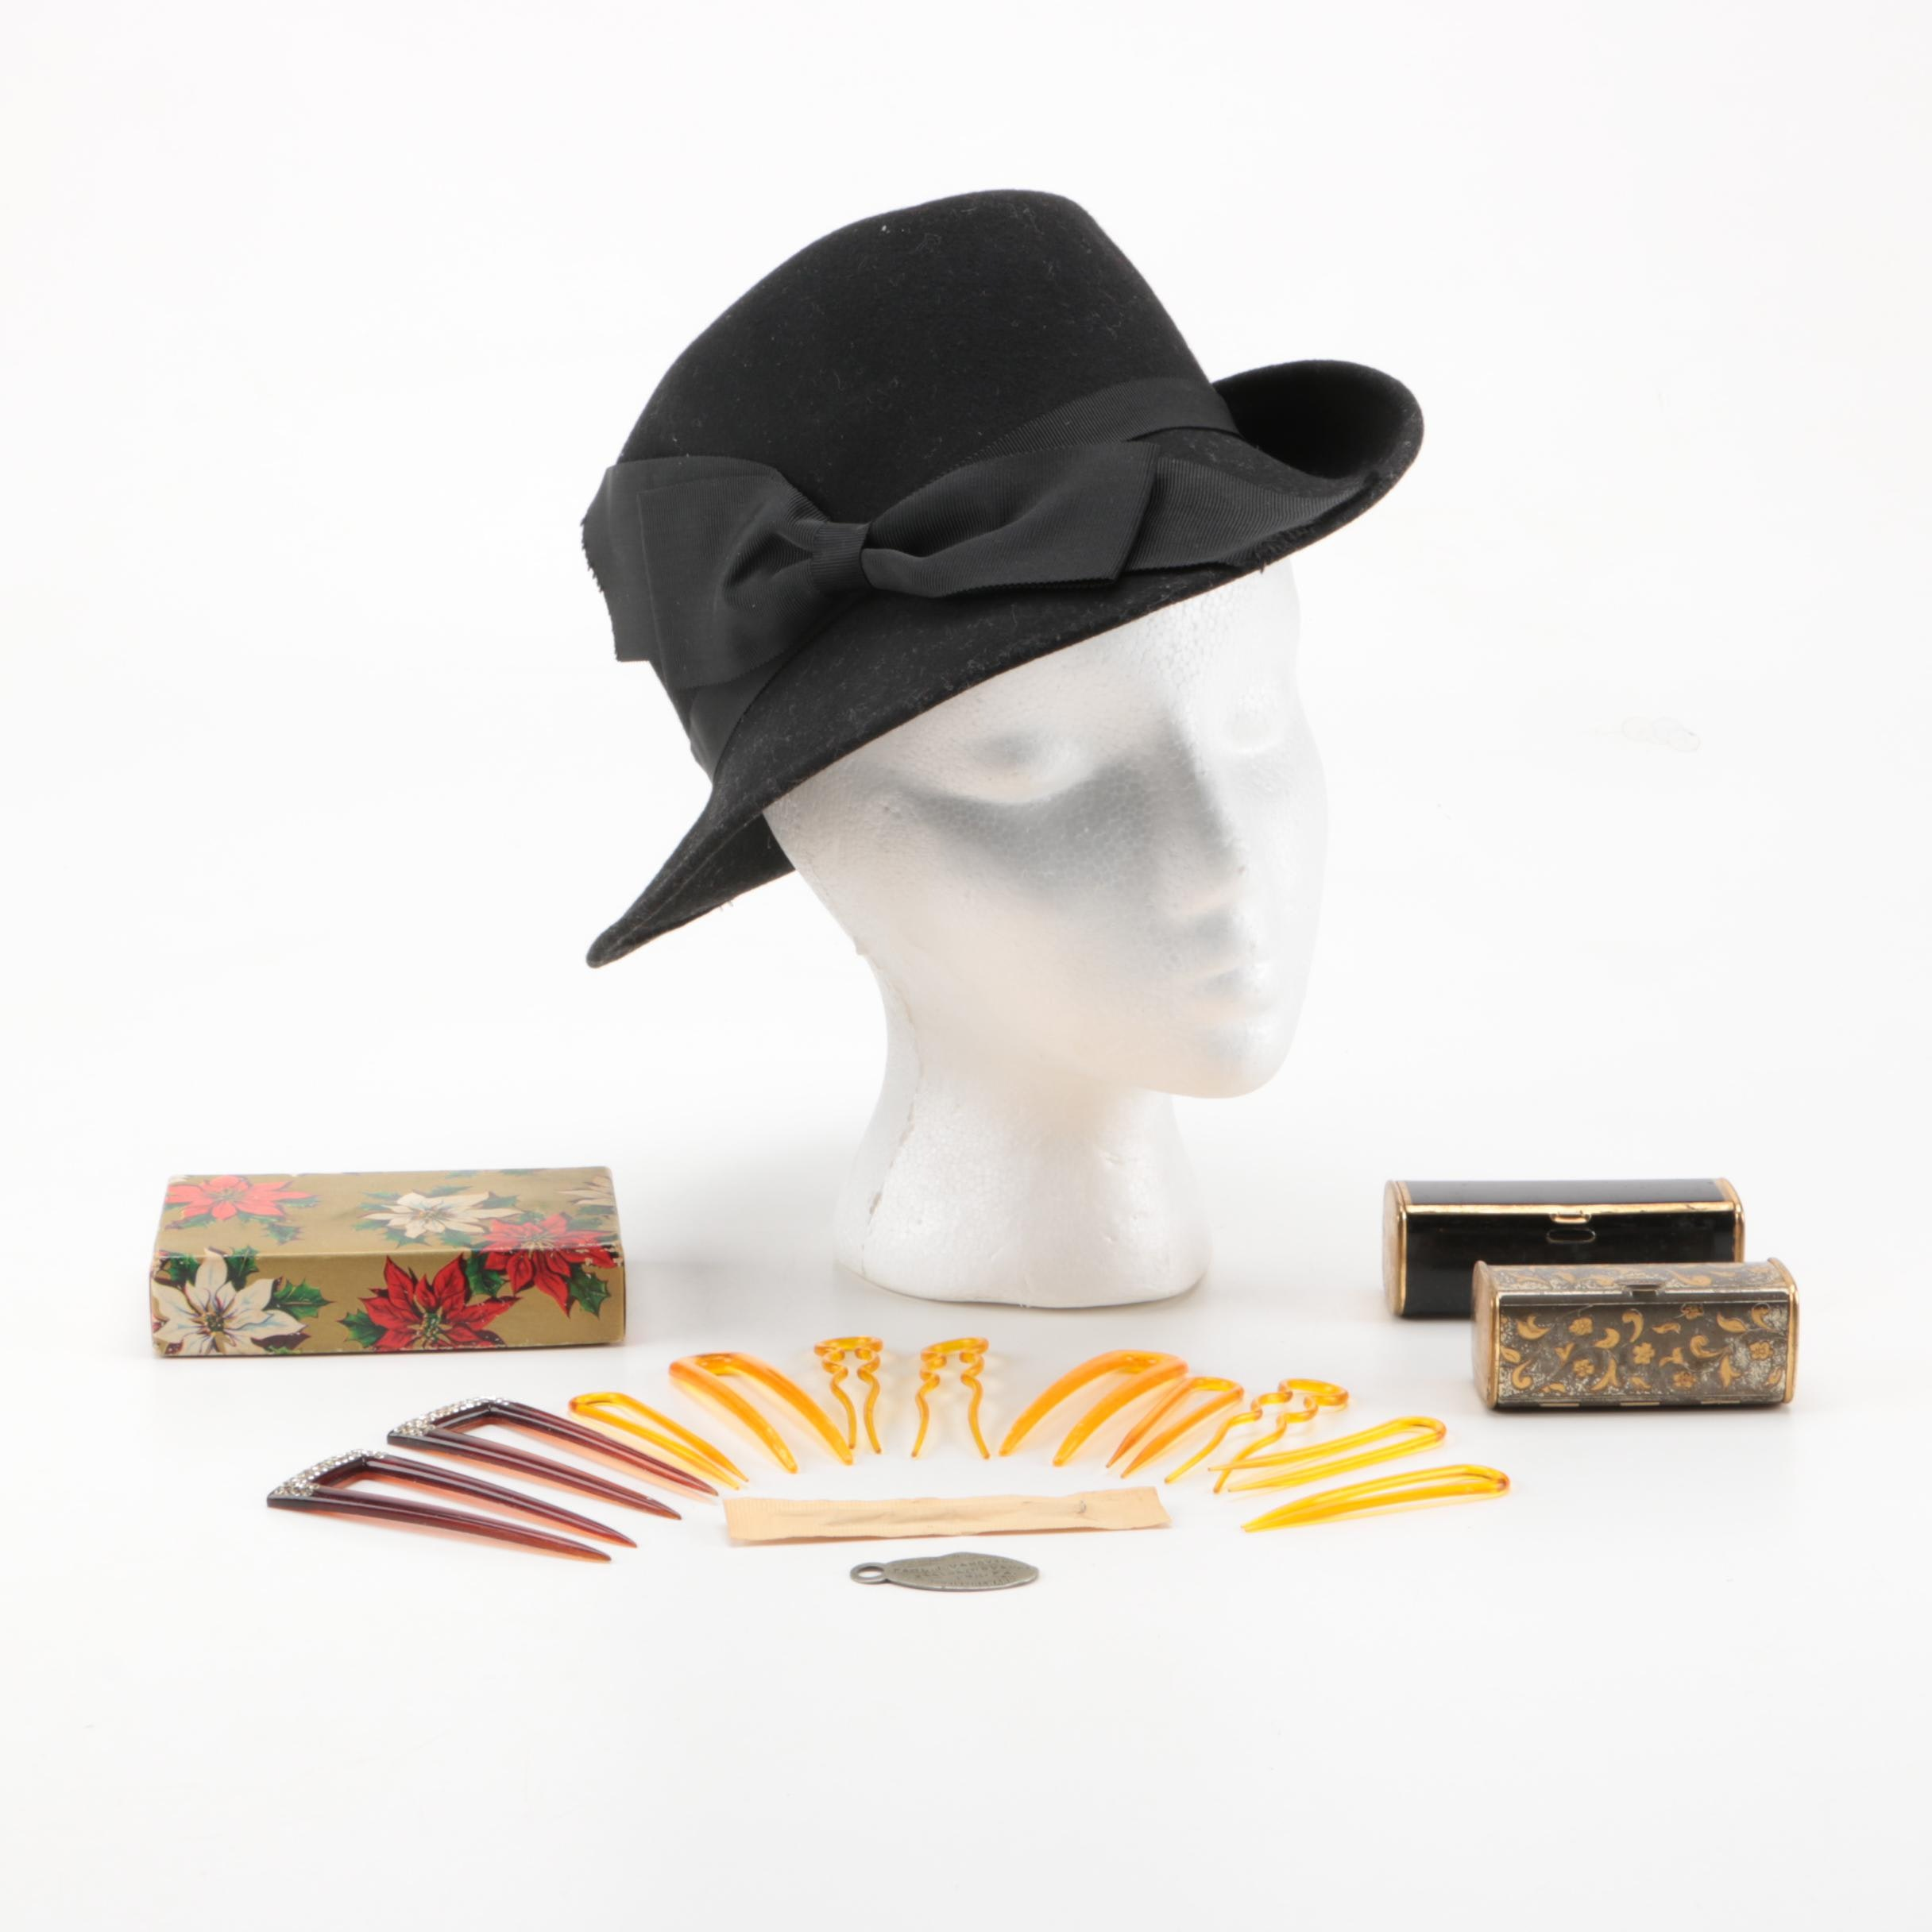 Vintage Doeskin Hat and Hair Accessories Including Lipstick Cases